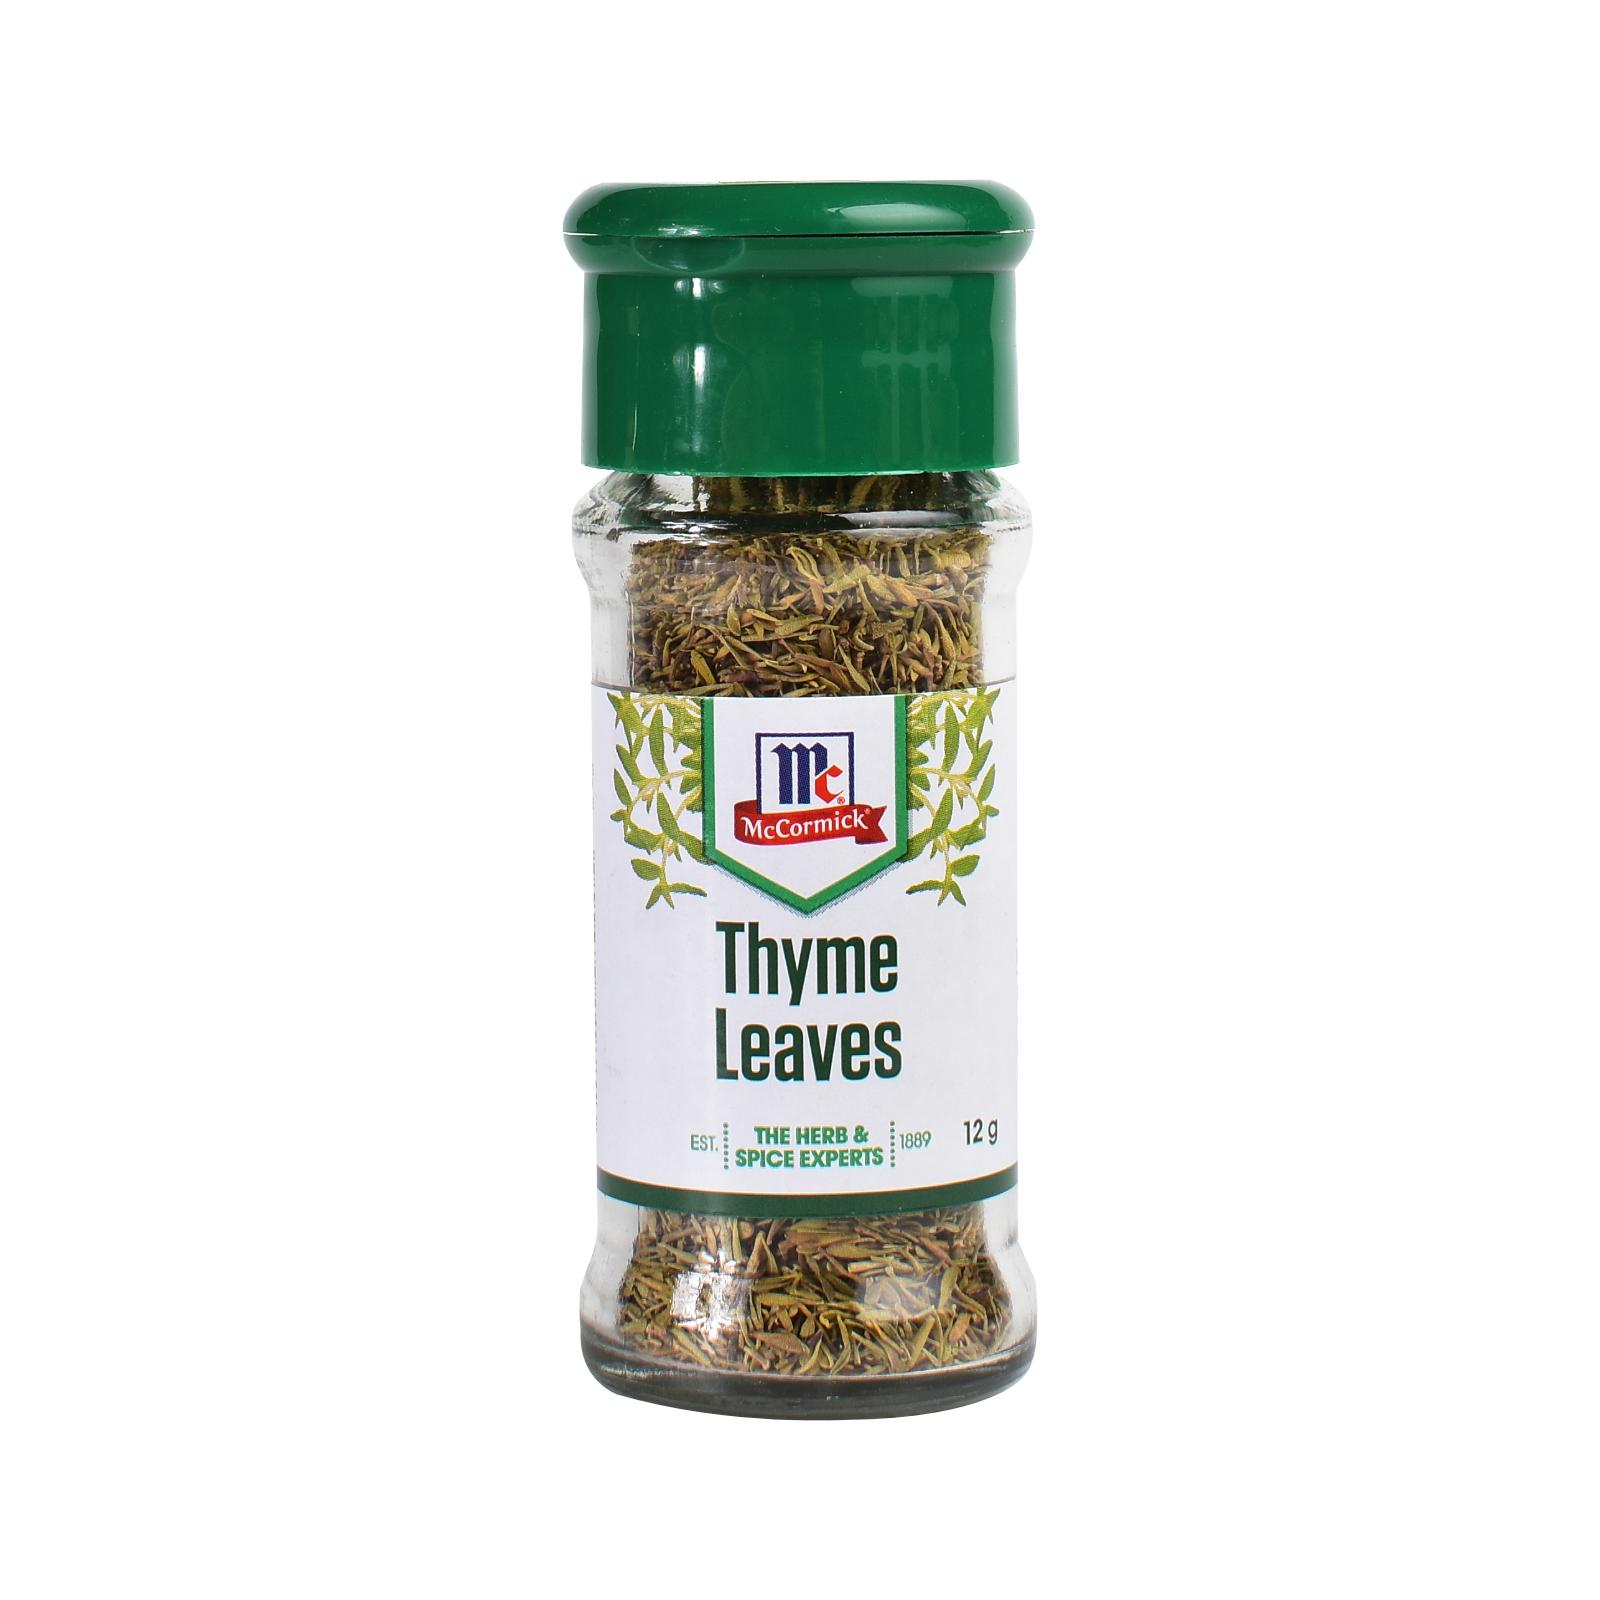 mc thyme leaves.png